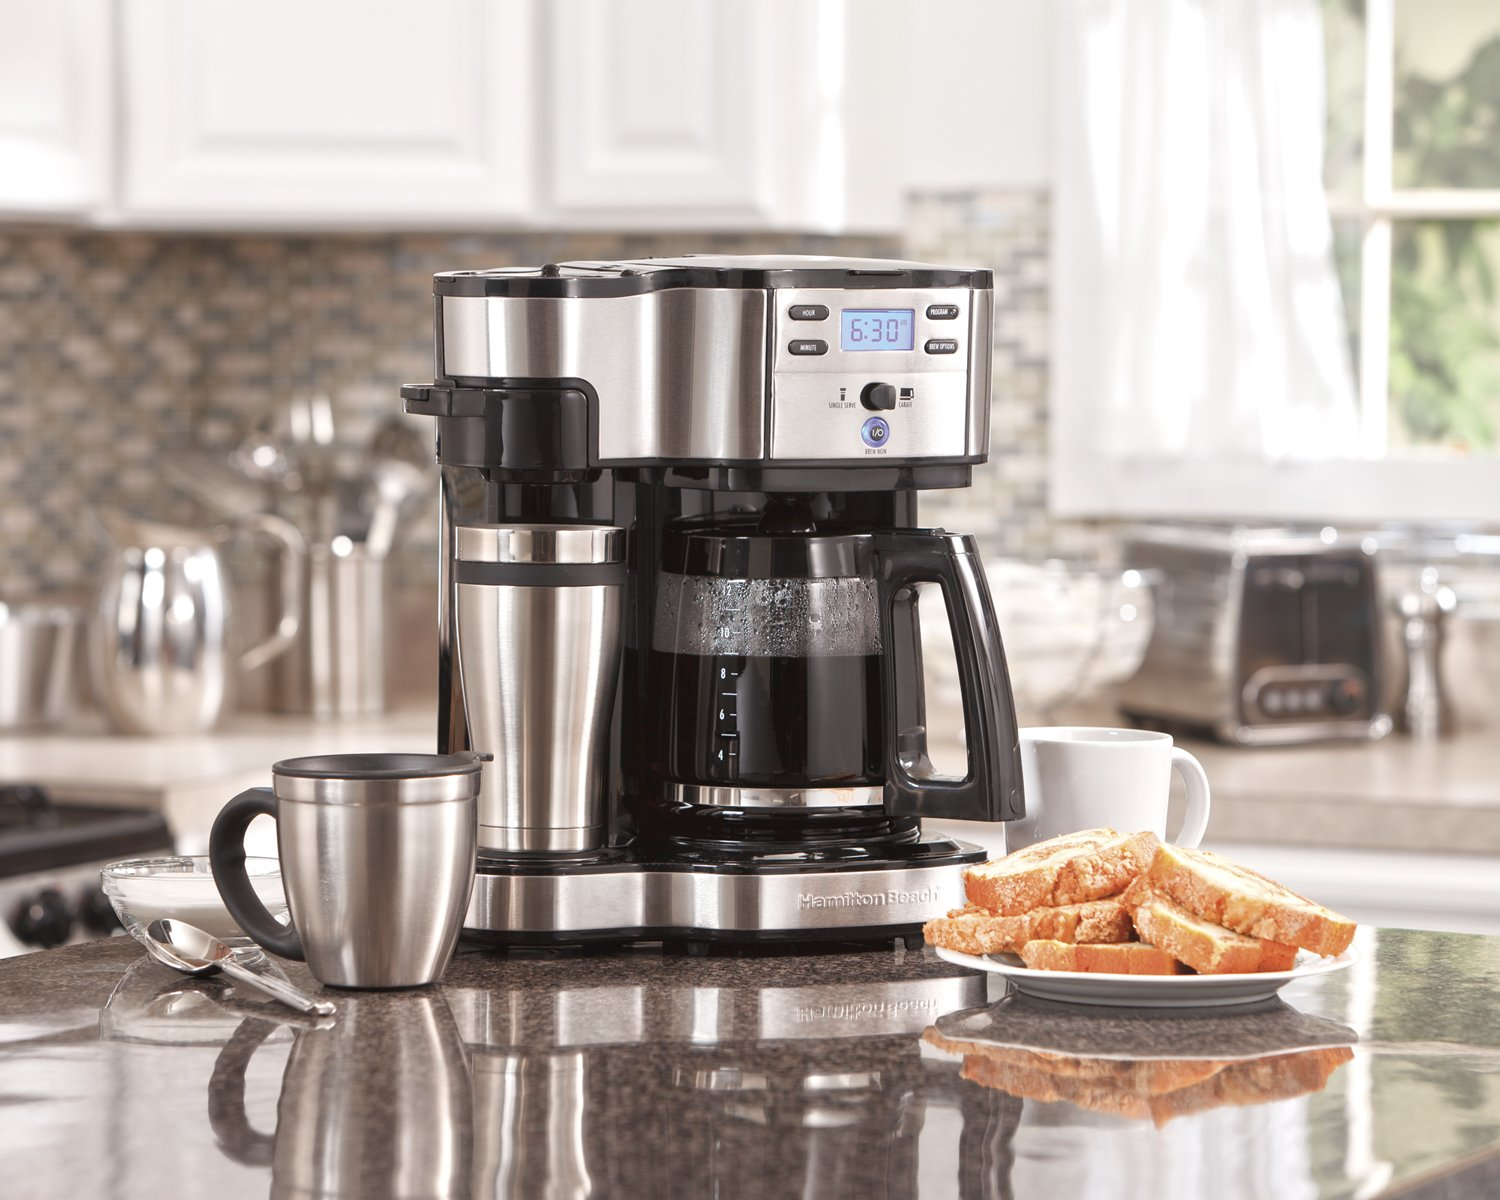 Hamilton Beach (49980A) Single Serve Coffee Maker and Coffee Pot Maker, Programmable, Black/Stainless Steel by Hamilton Beach (Image #2)